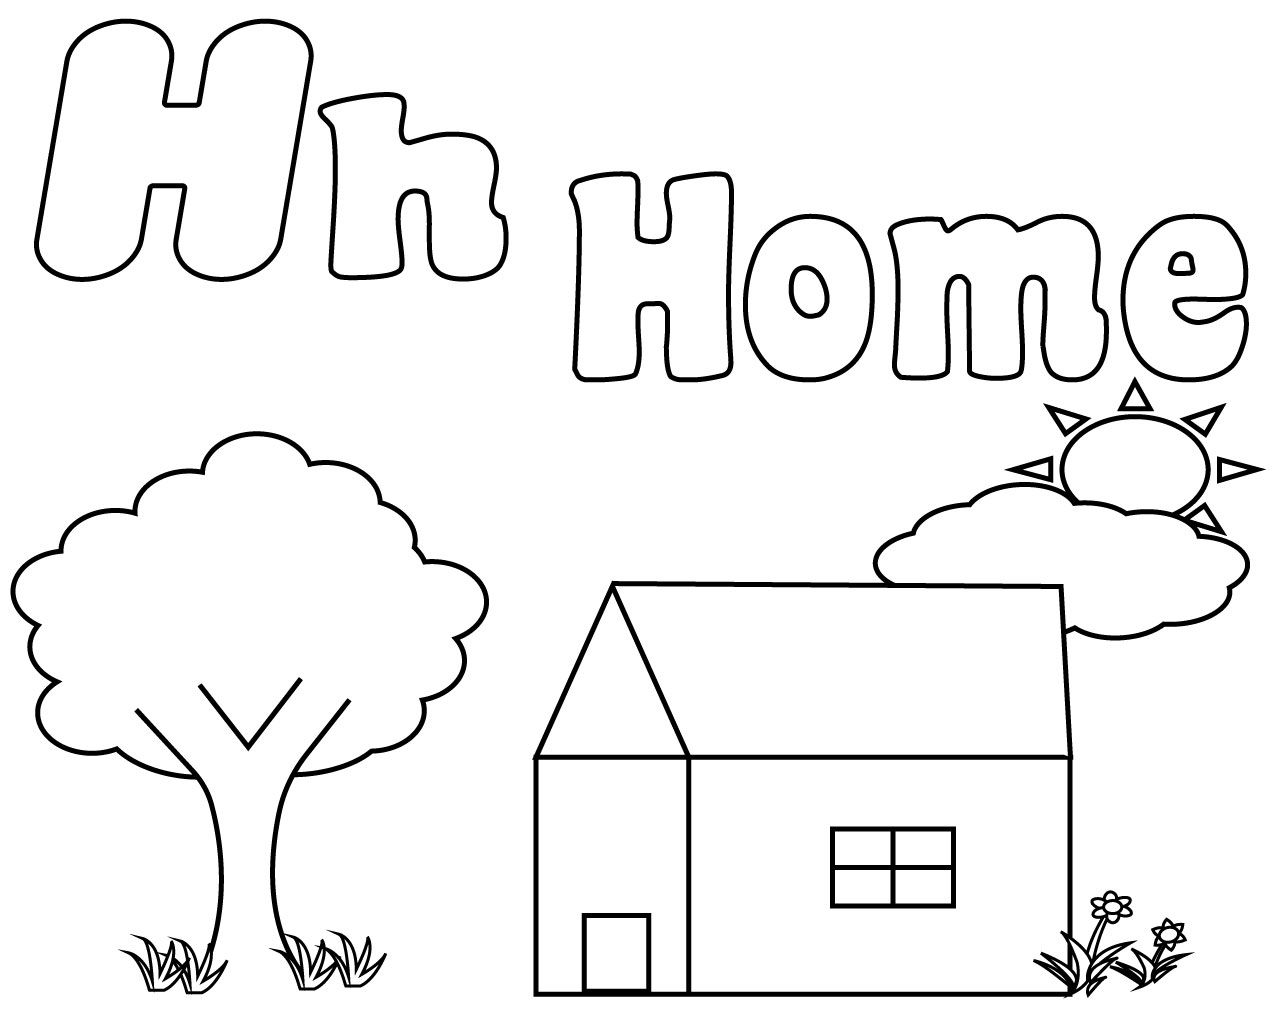 Letter H Coloring Pages For Preschoolers Coloring Pages Free Printable Letters Coloring Pages For Kids